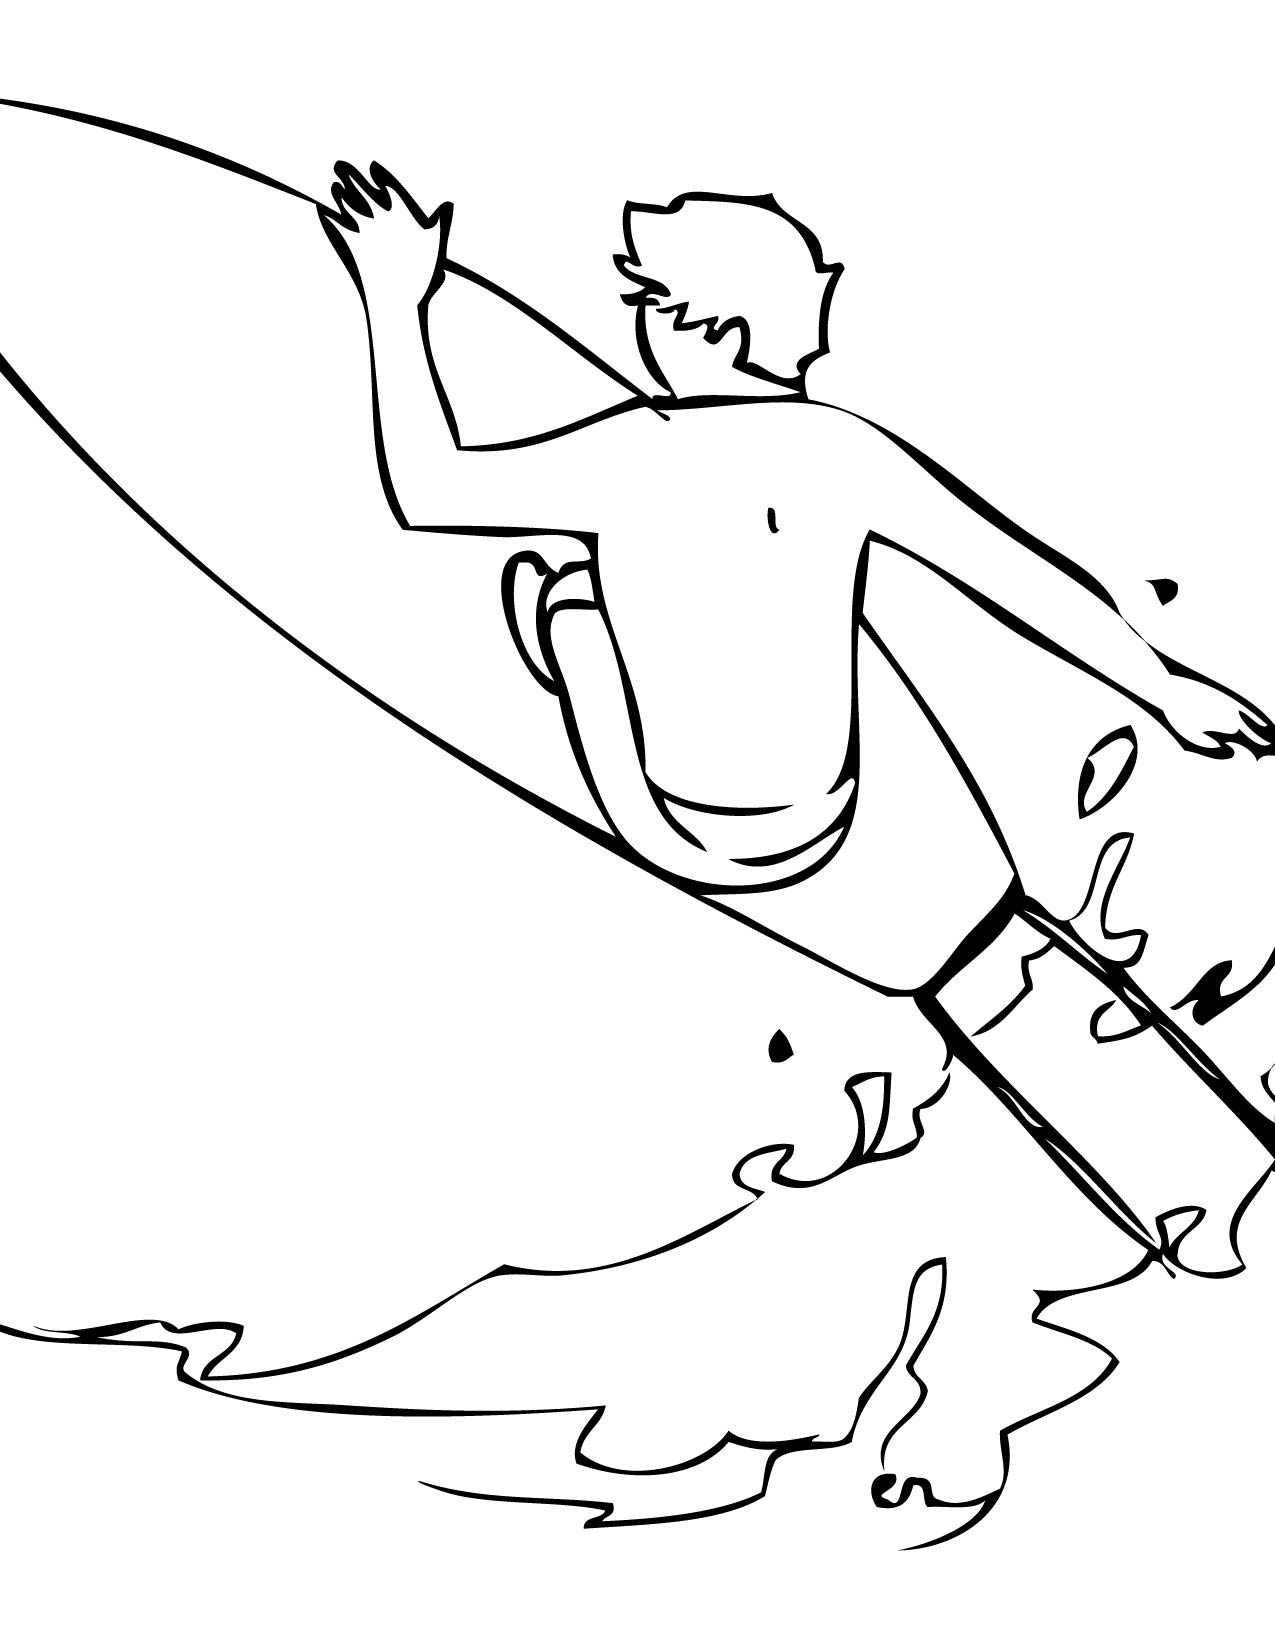 surfboard coloring pages - surfing coloring pages the image kid